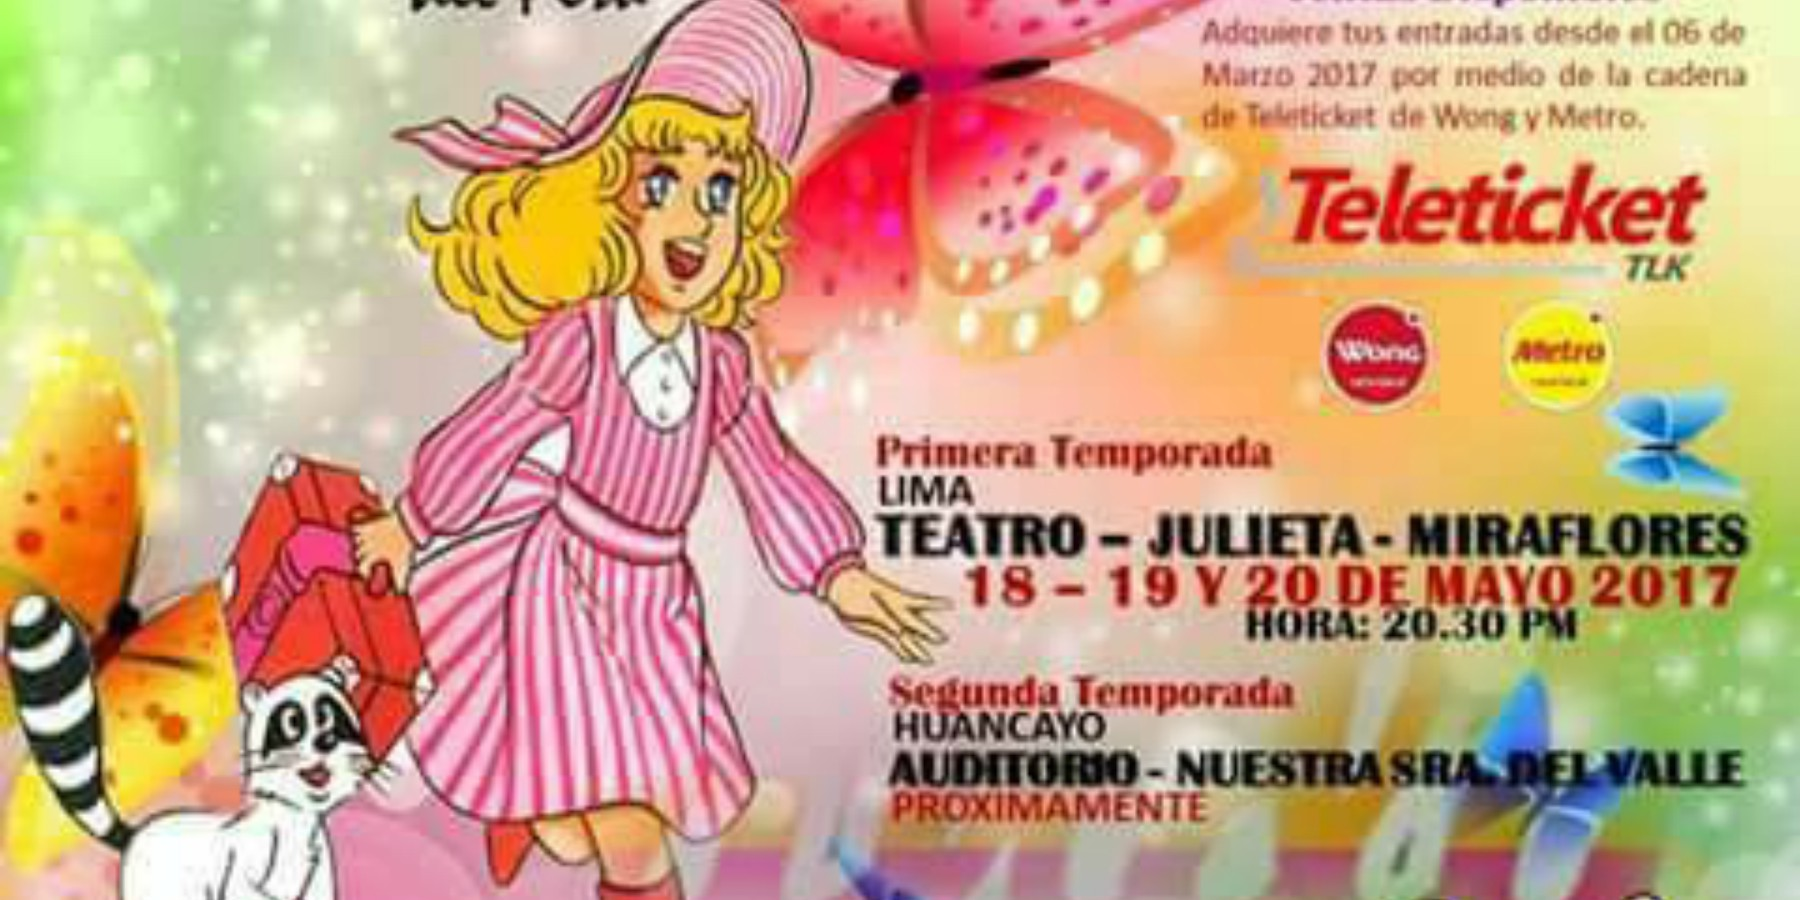 Candy El Musical | Teatro Julieta